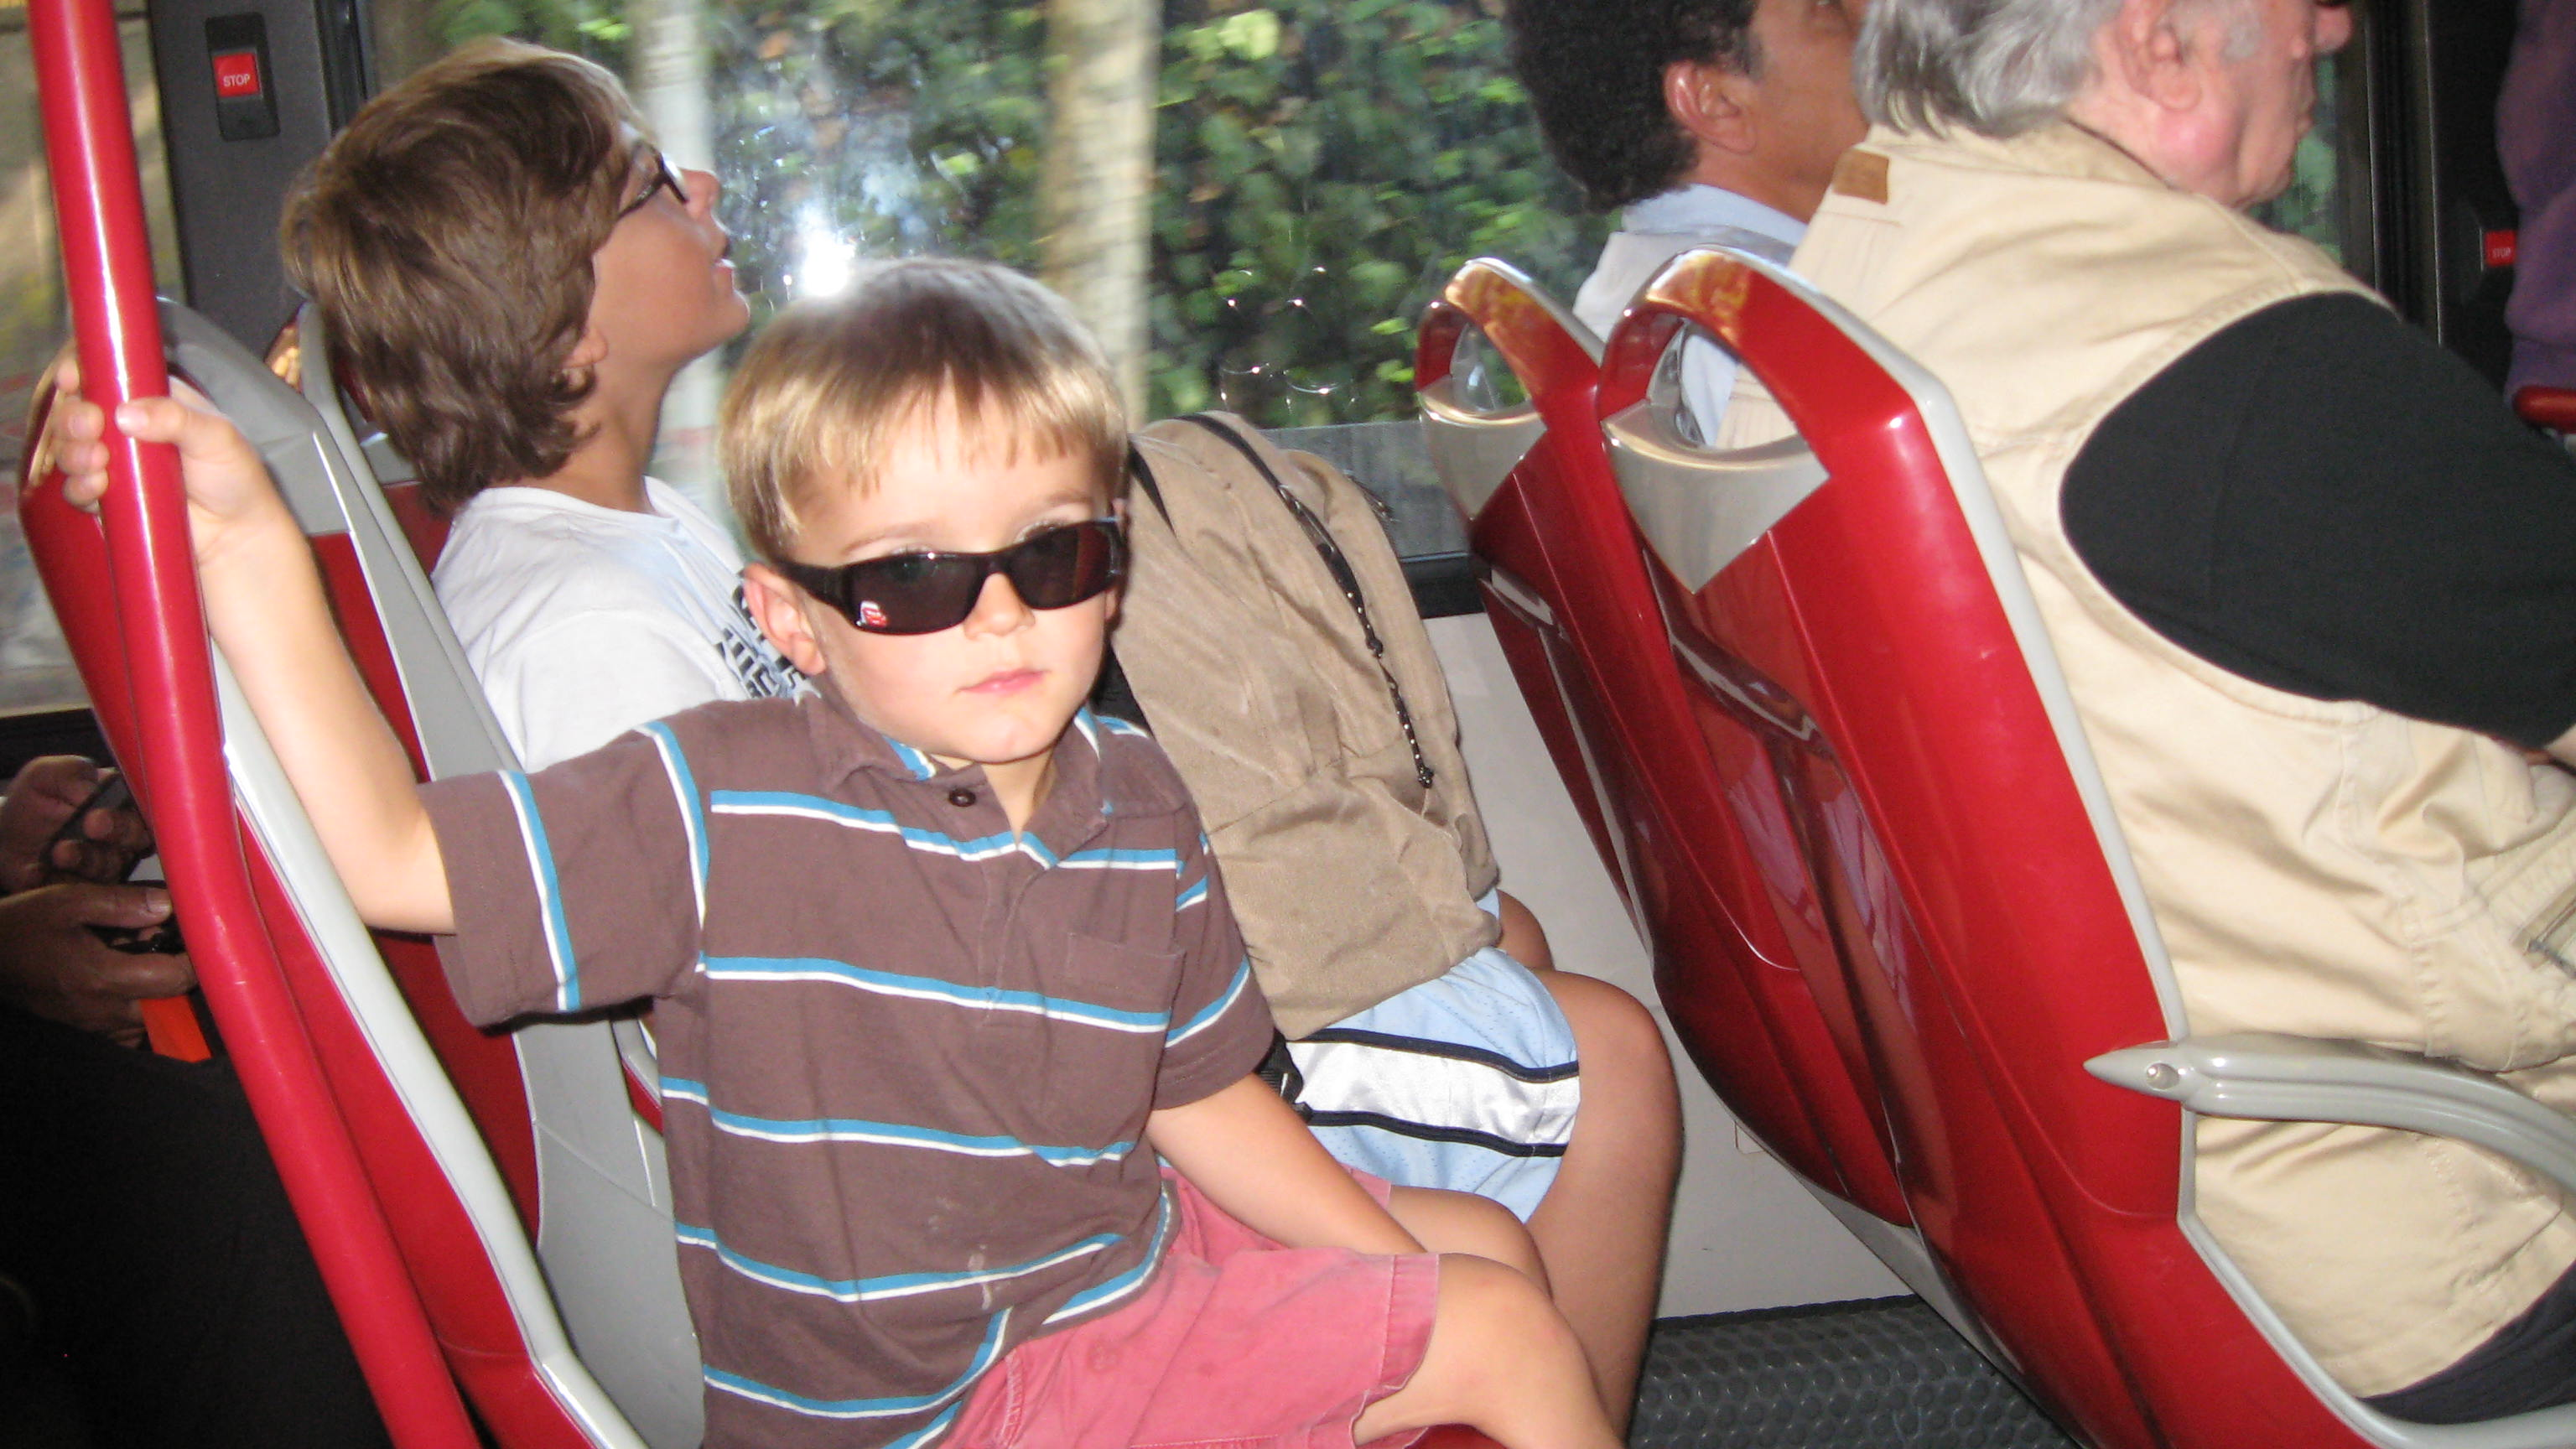 Jack on the bus